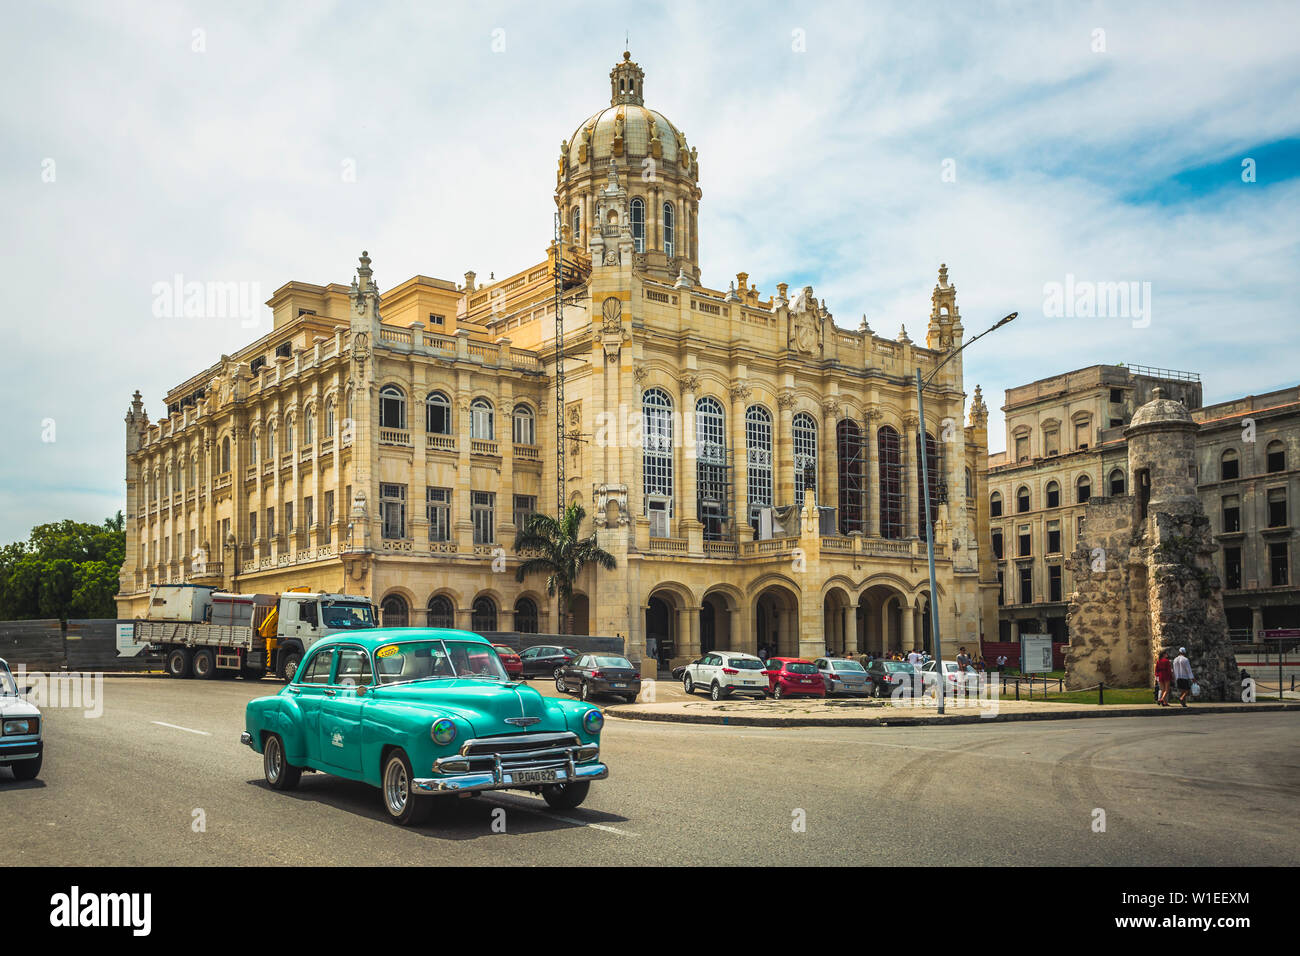 Old classic car and The former Presidential Palace, The Museum of the Revolution in Old Havana, Cuba, West Indies, Caribbean, Central America Stock Photo